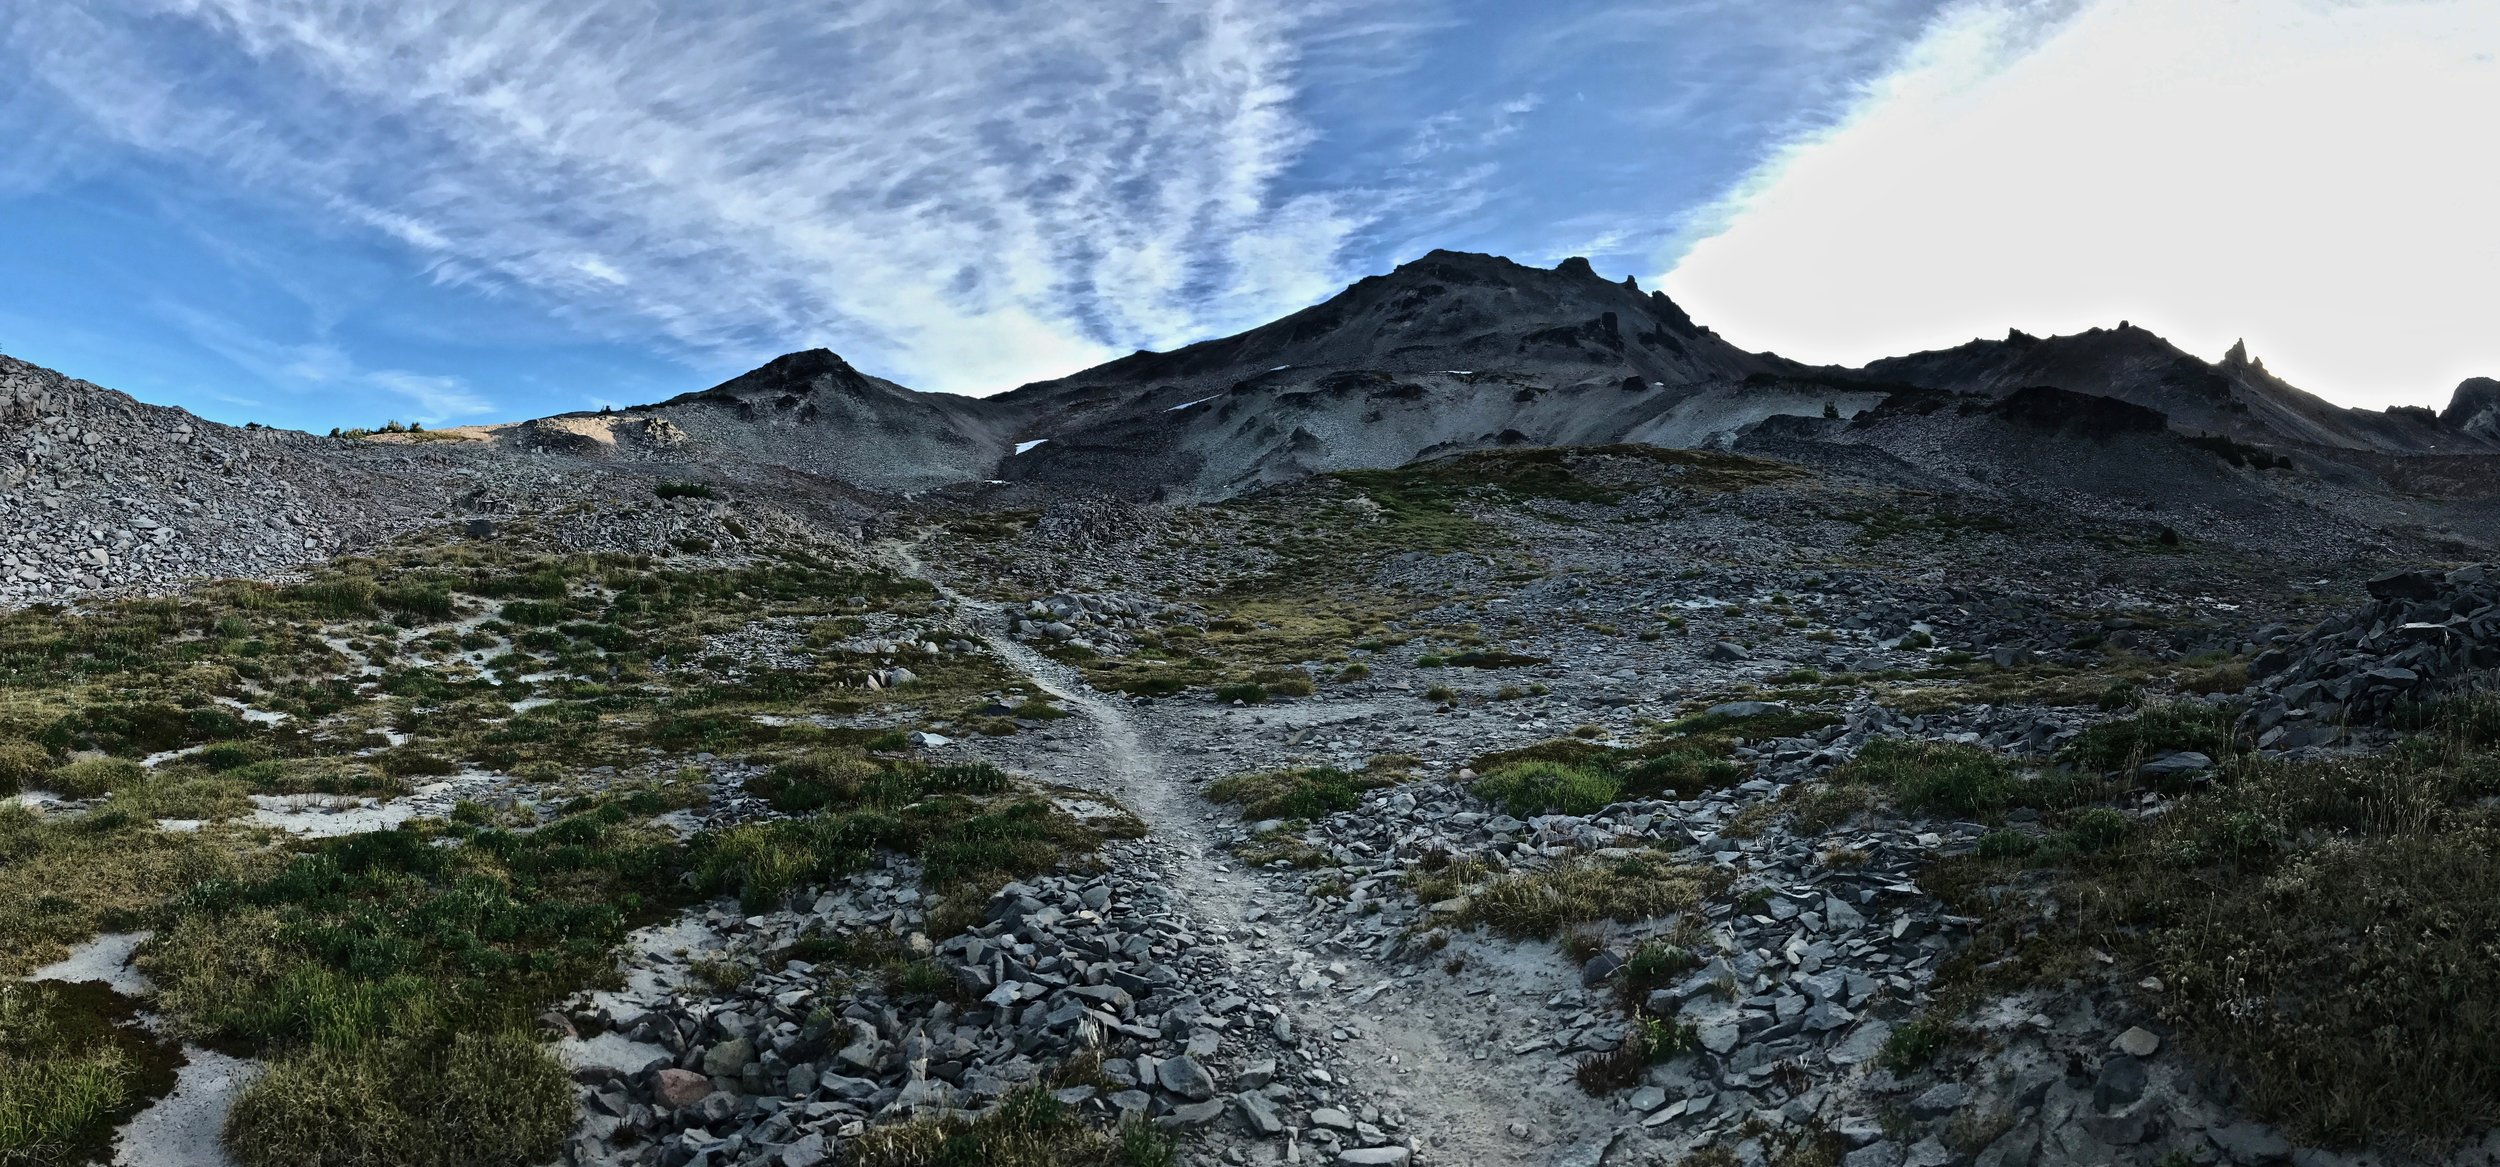 Heading over one last hump into Goat Rocks